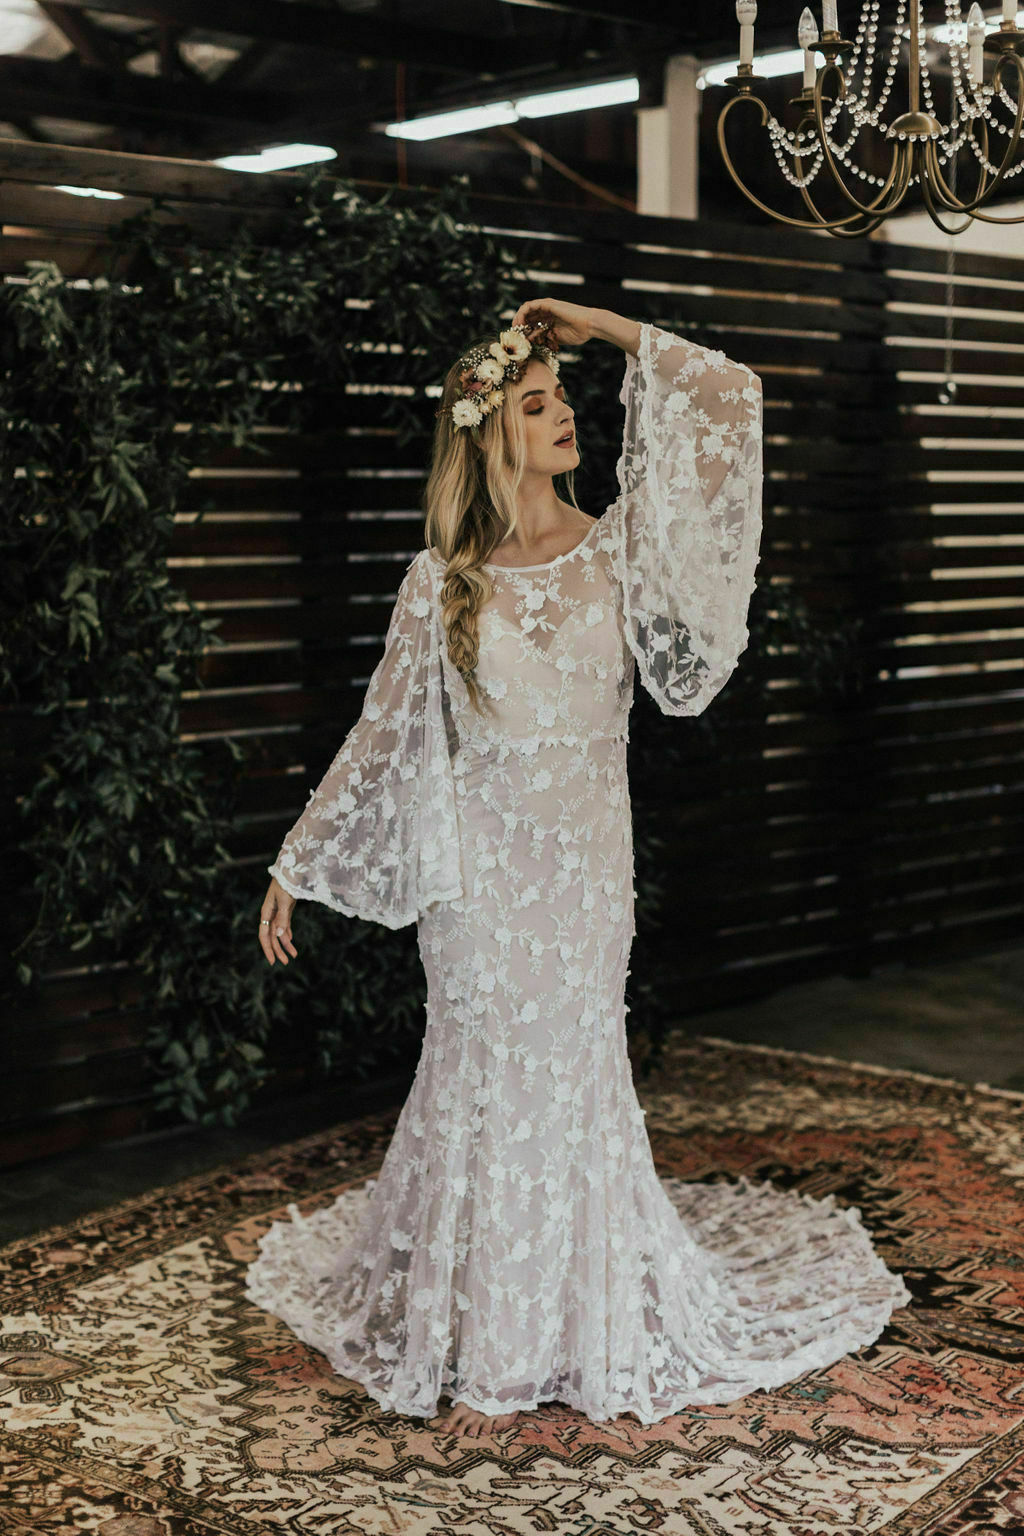 Samantha-bell-sleeves-bohemian-wedding-gown